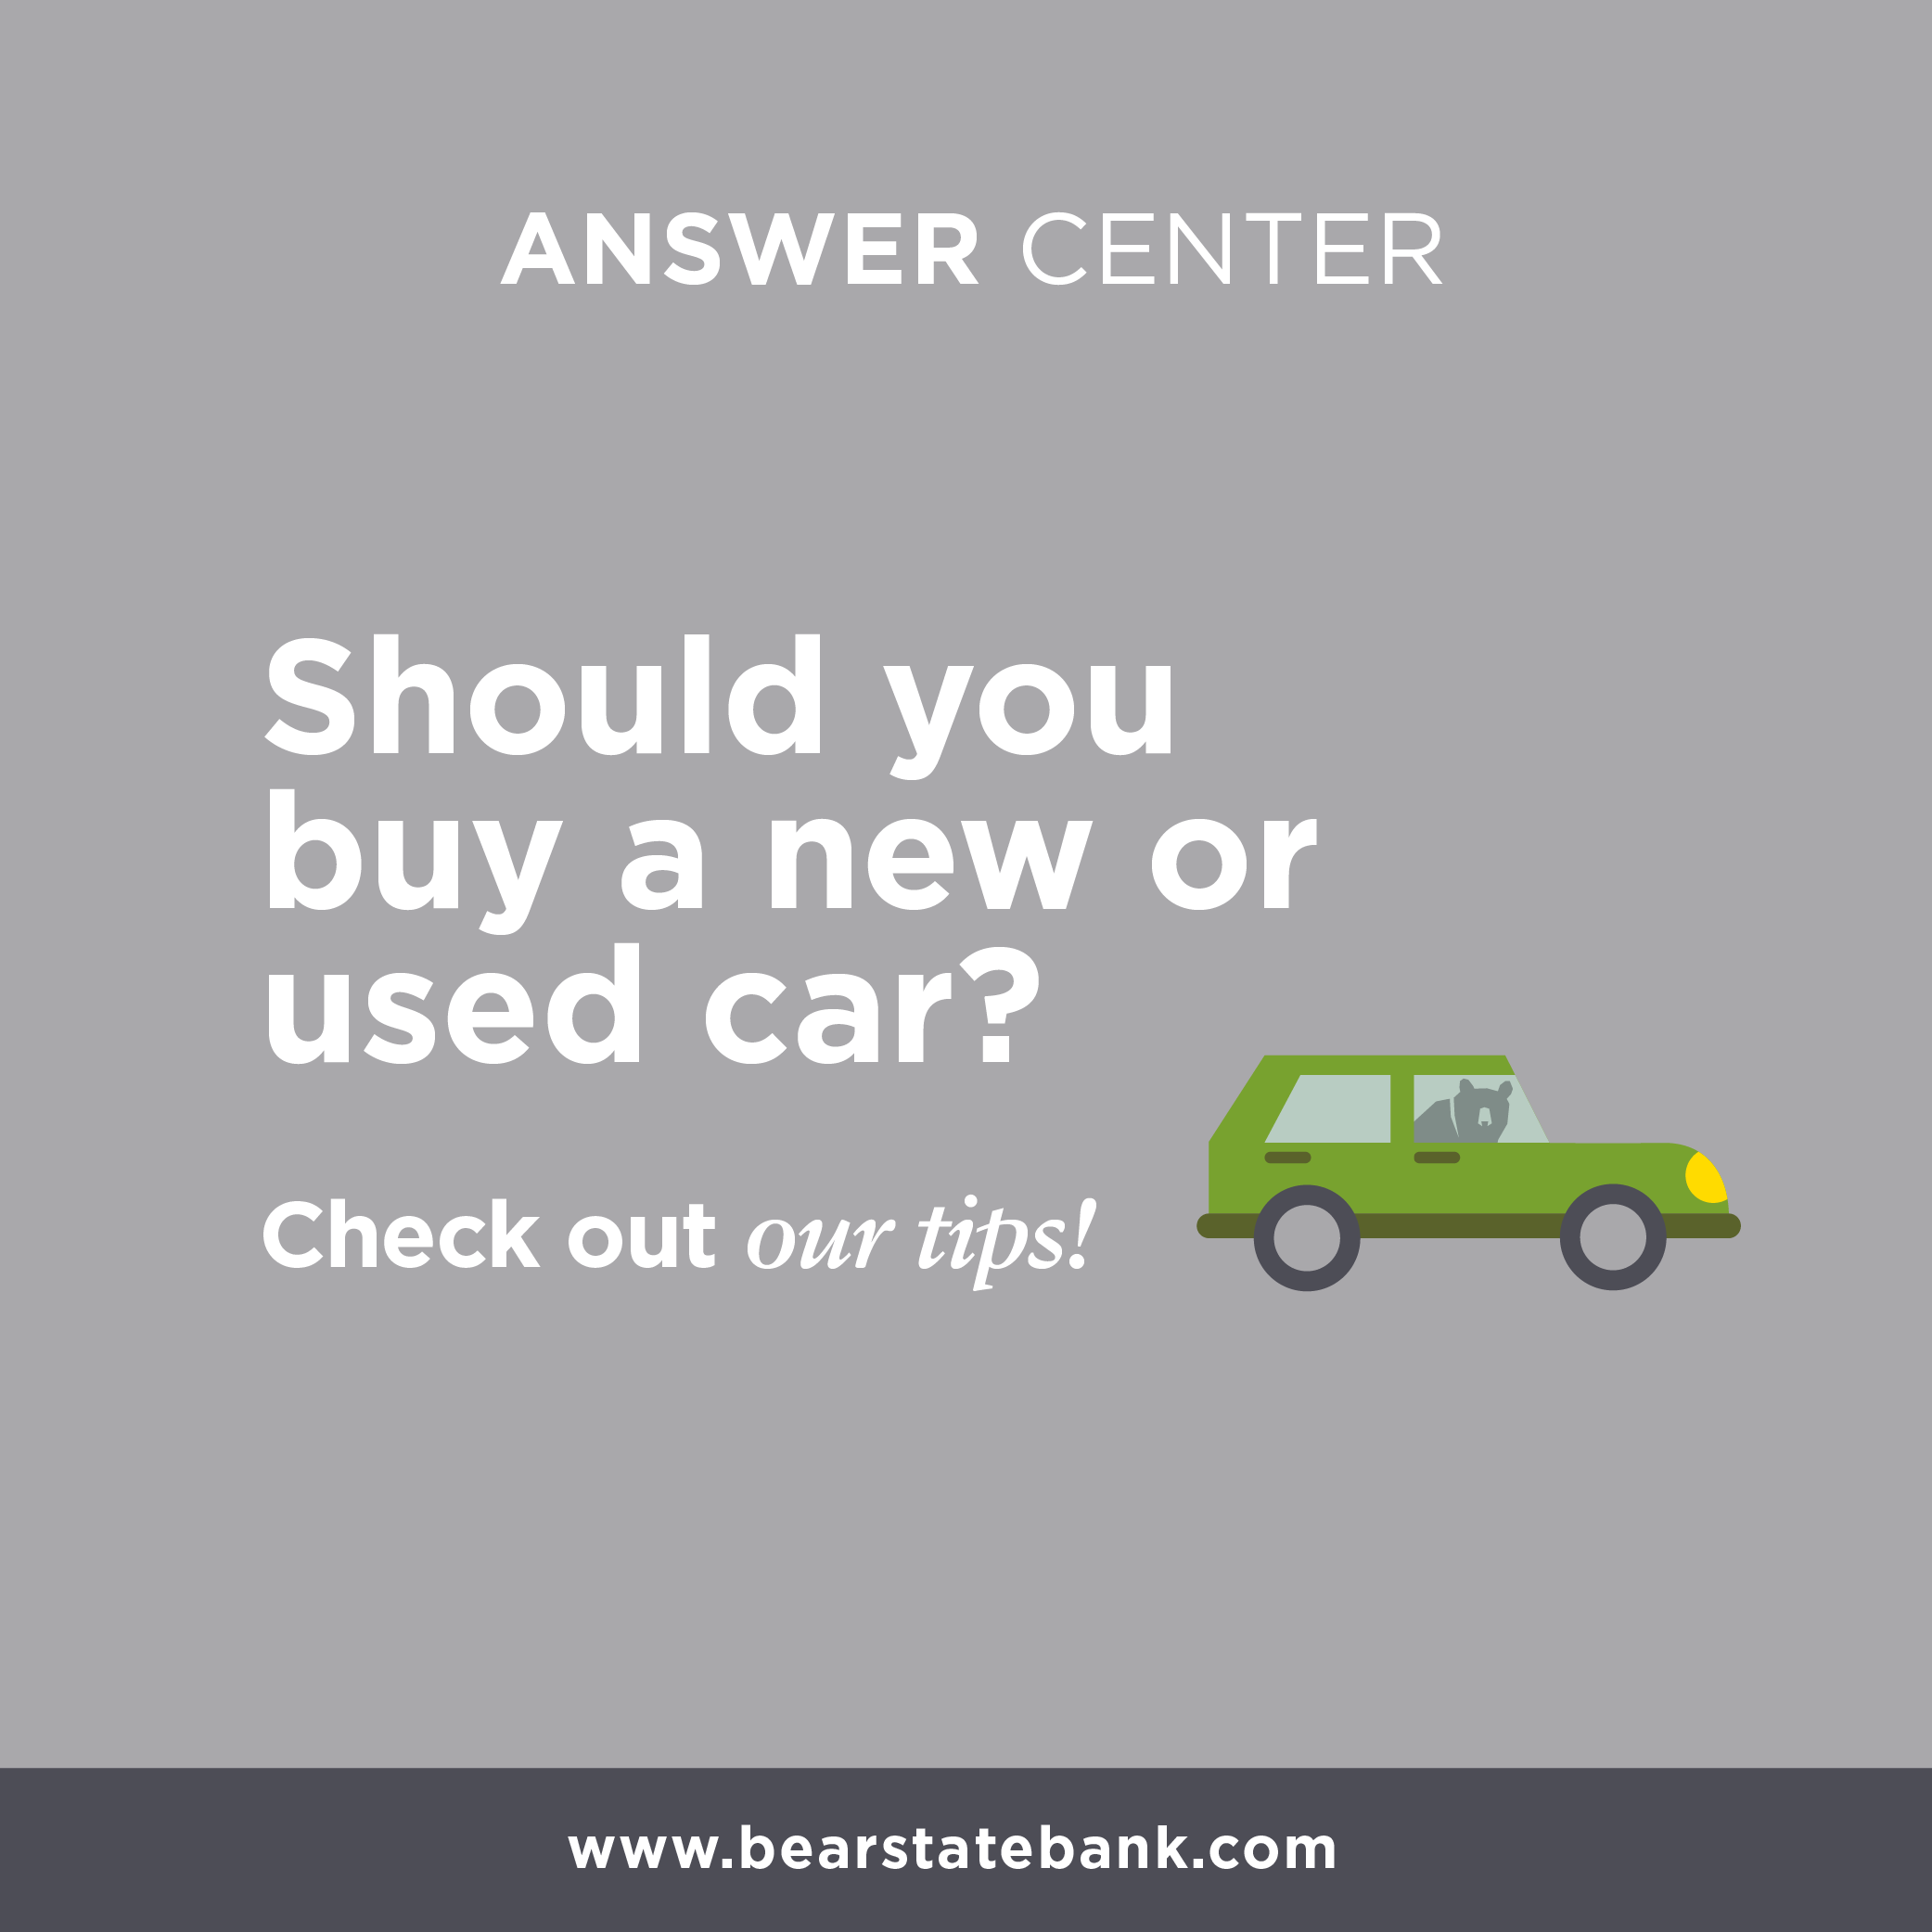 Should you buy a new or used car? Check out our tips on our website